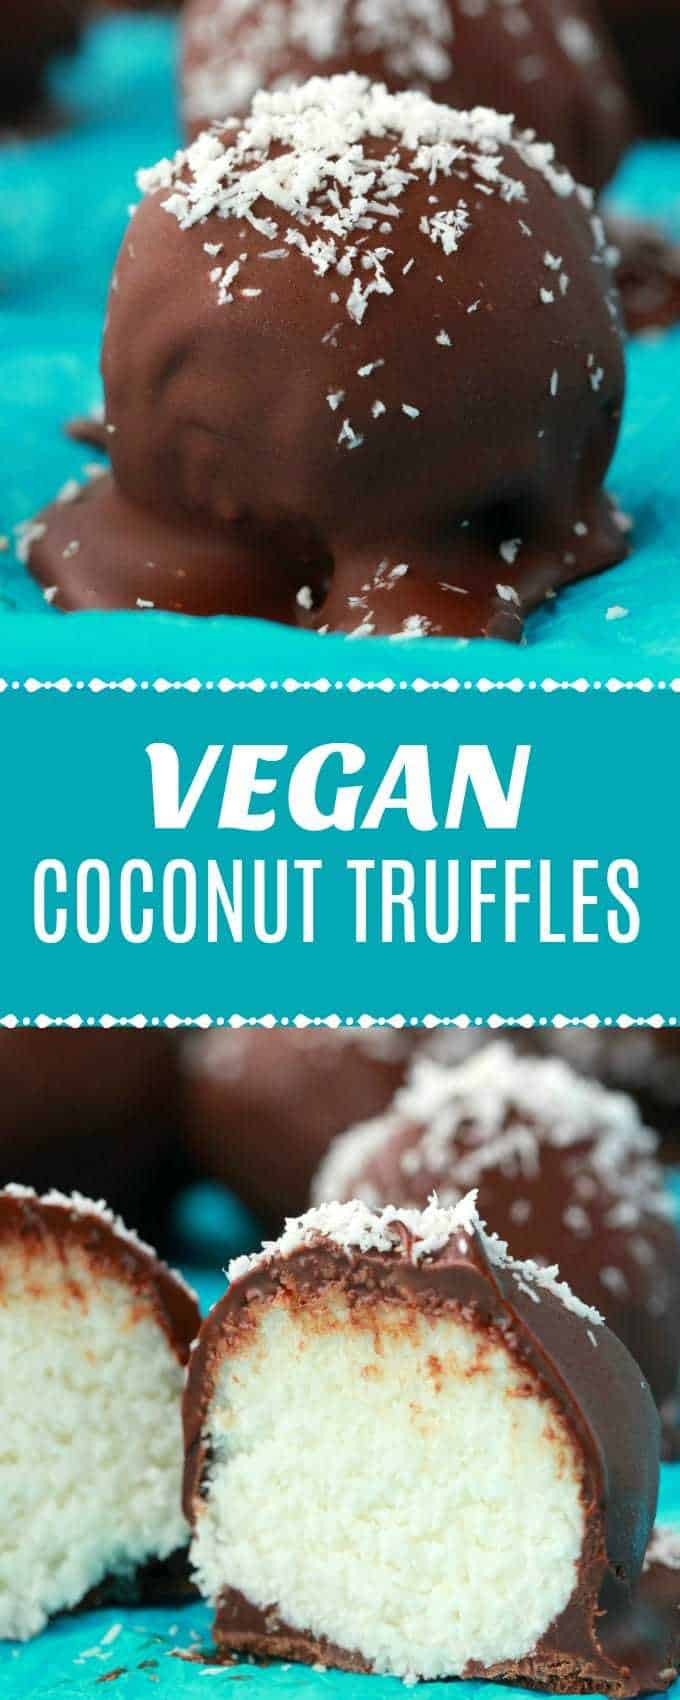 Cute and fun vegan coconut truffles! Perfectly sweet coconut and vegan condensed milk center smothered in delicious vegan chocolate! What could be better? All this and they're gluten-free too! | lovingitvegan.com